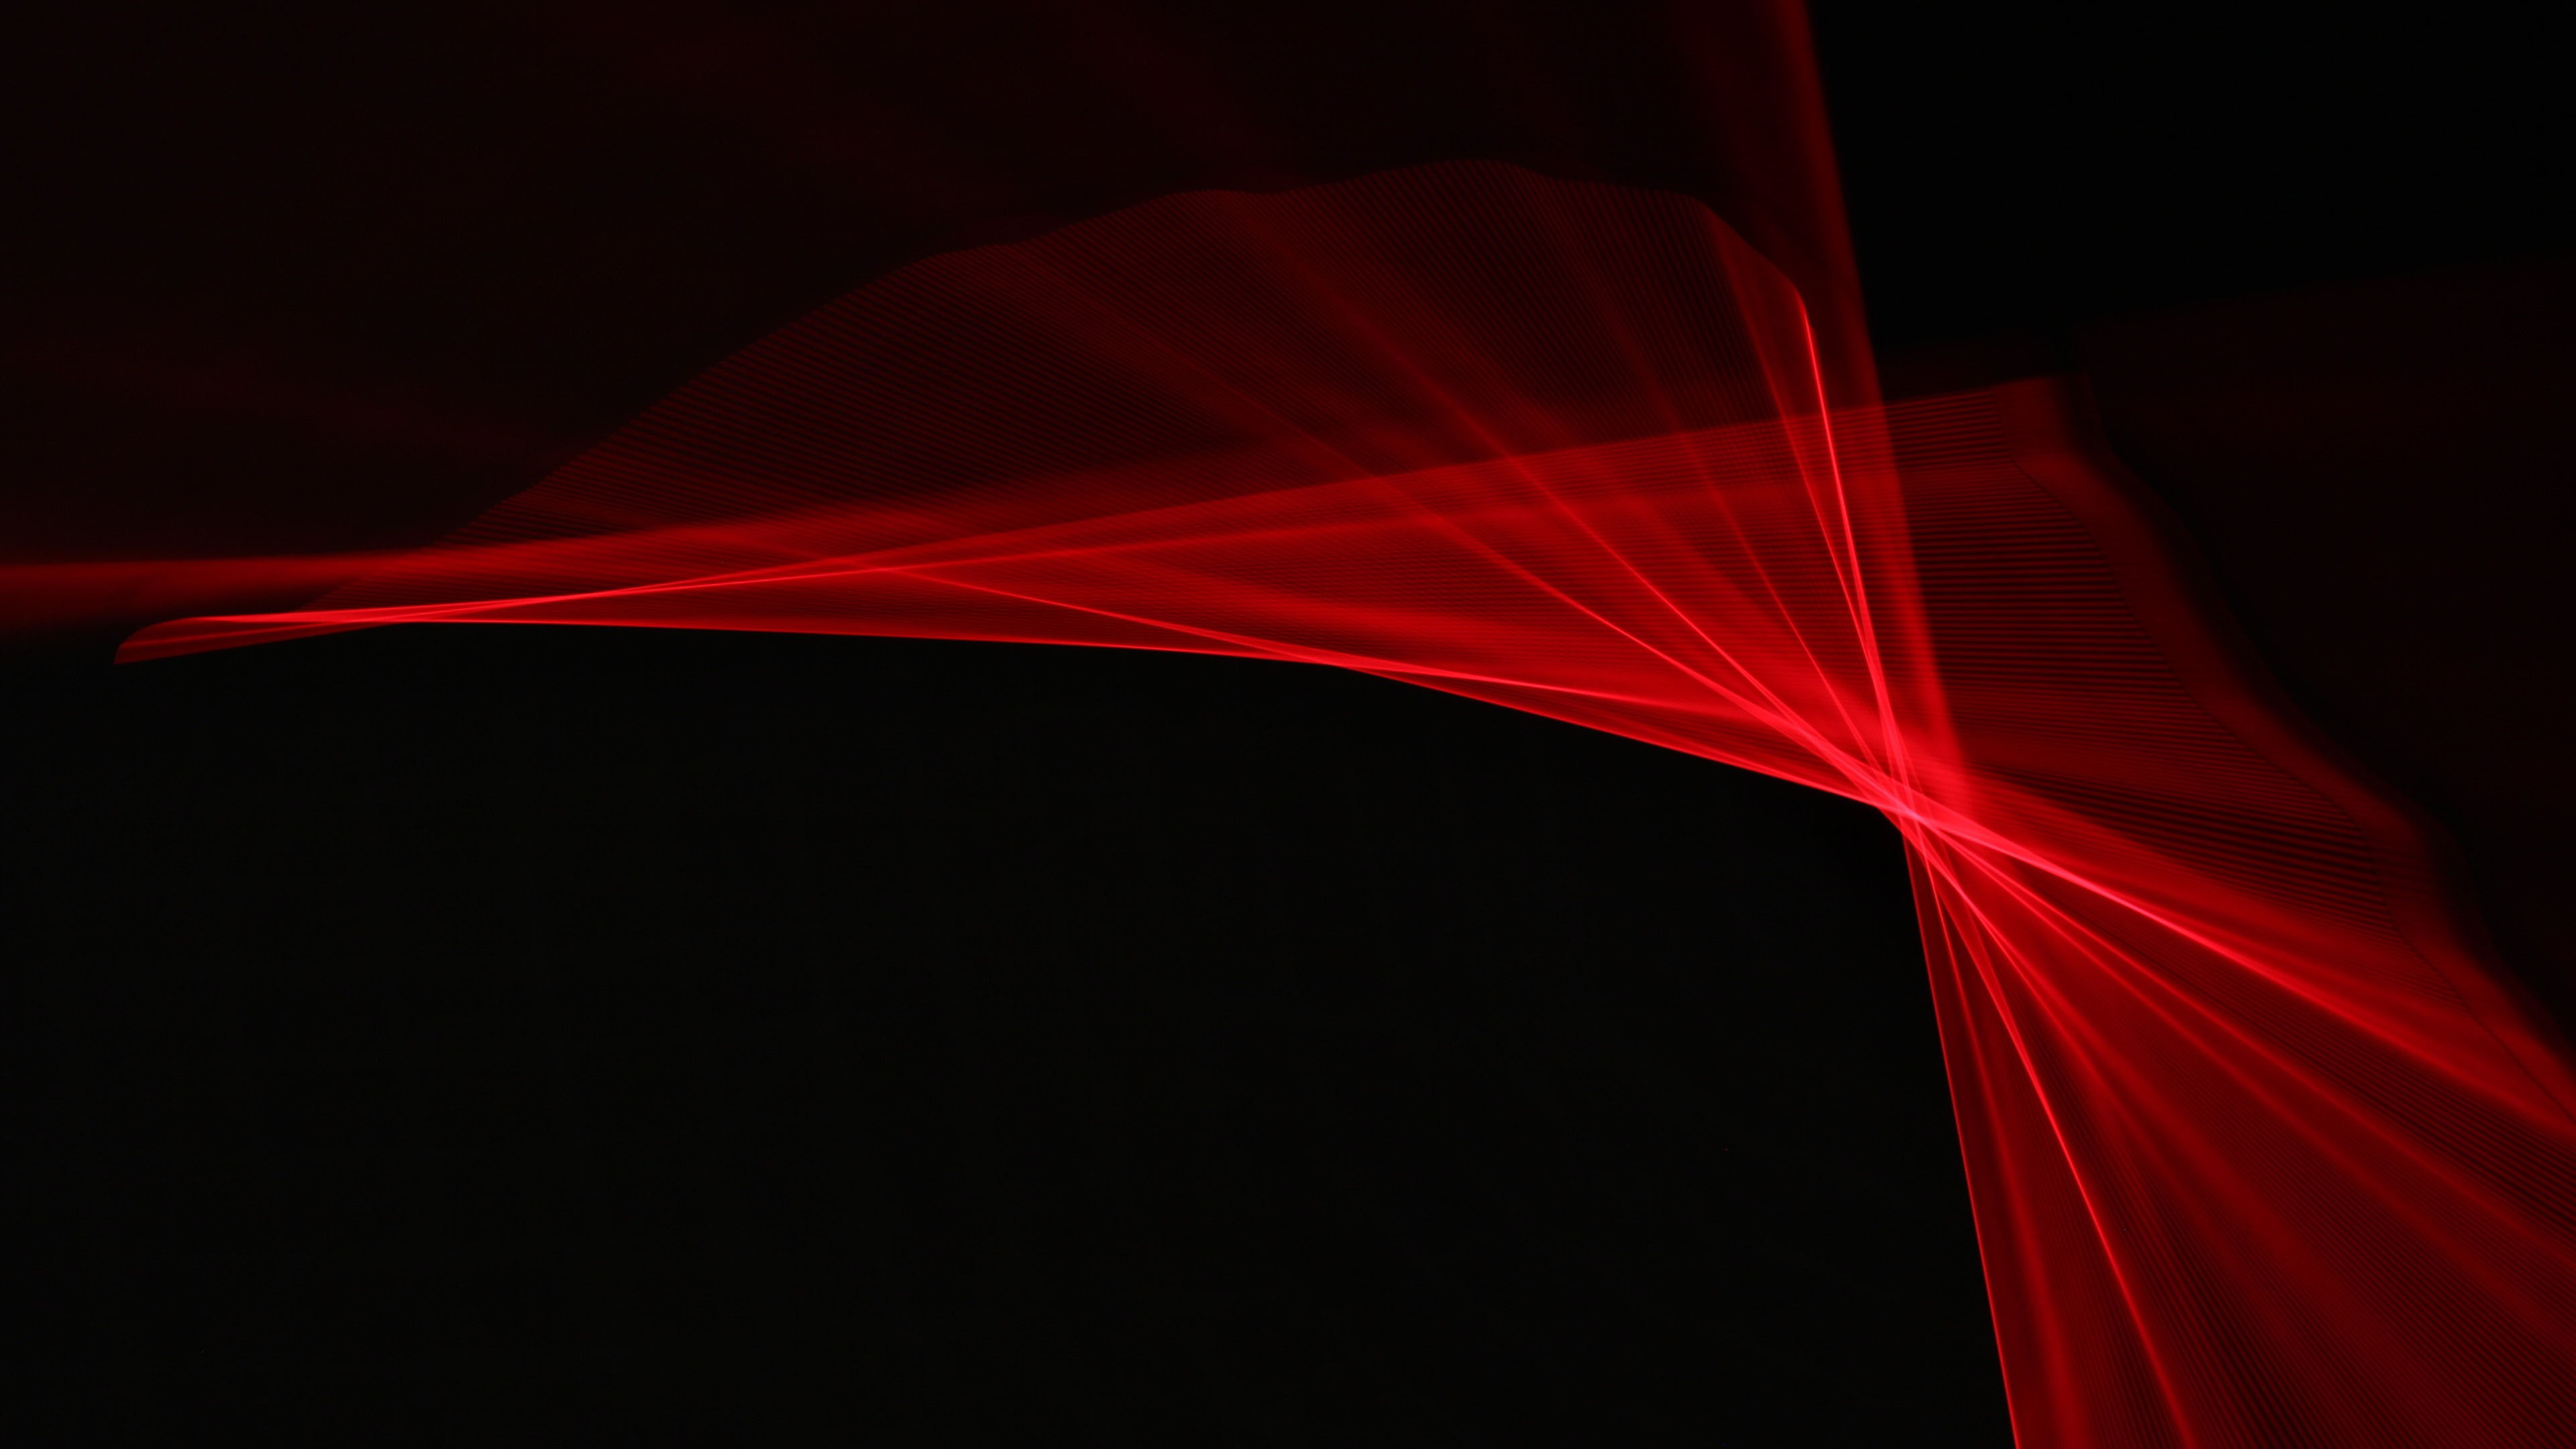 Wallpaper Red Rays Abstract Black Background 3840x2160 Uhd